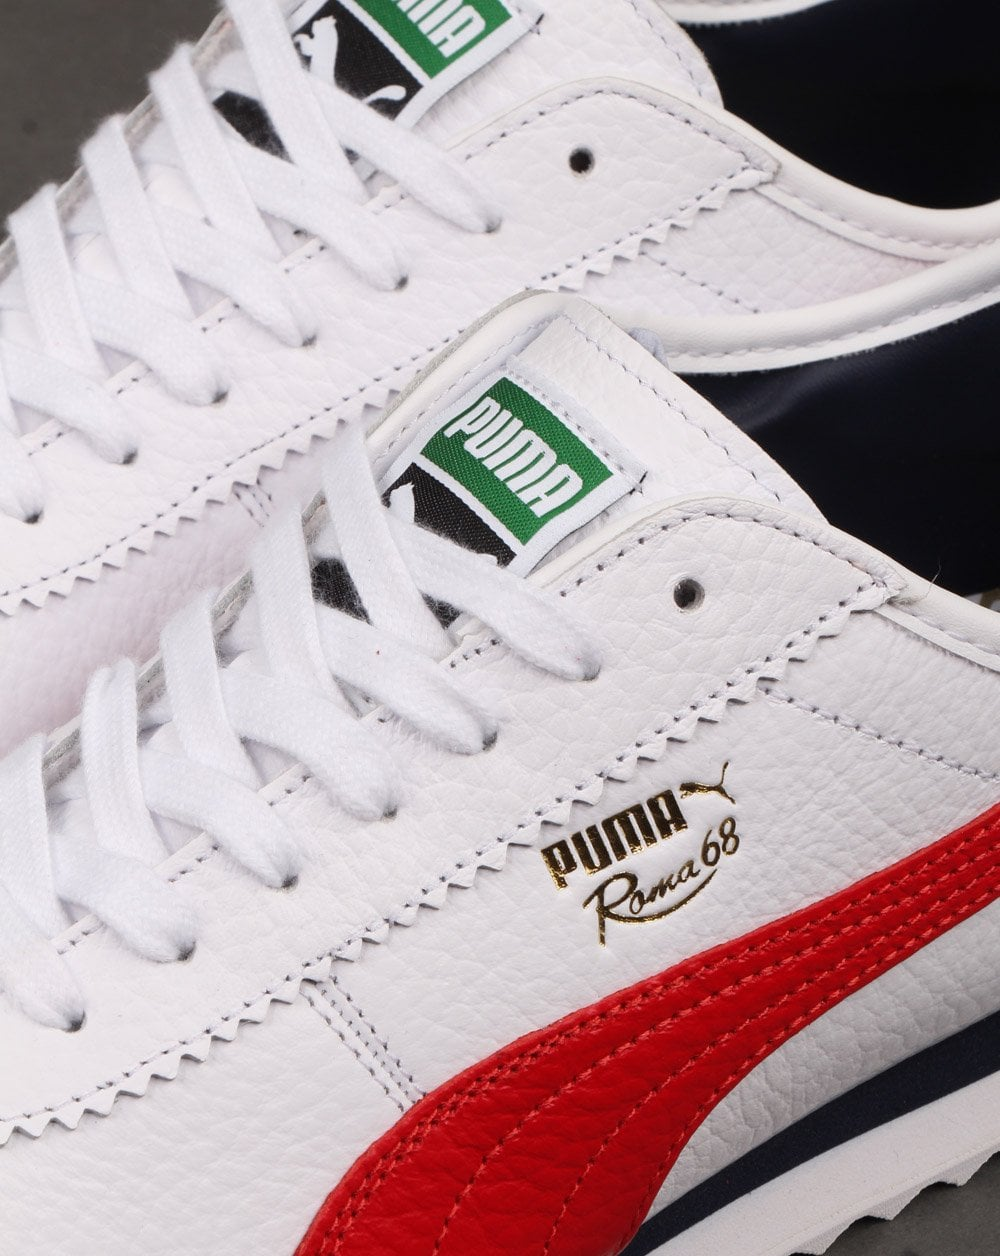 Puma Roma 68 Vintage Trainers White/Red